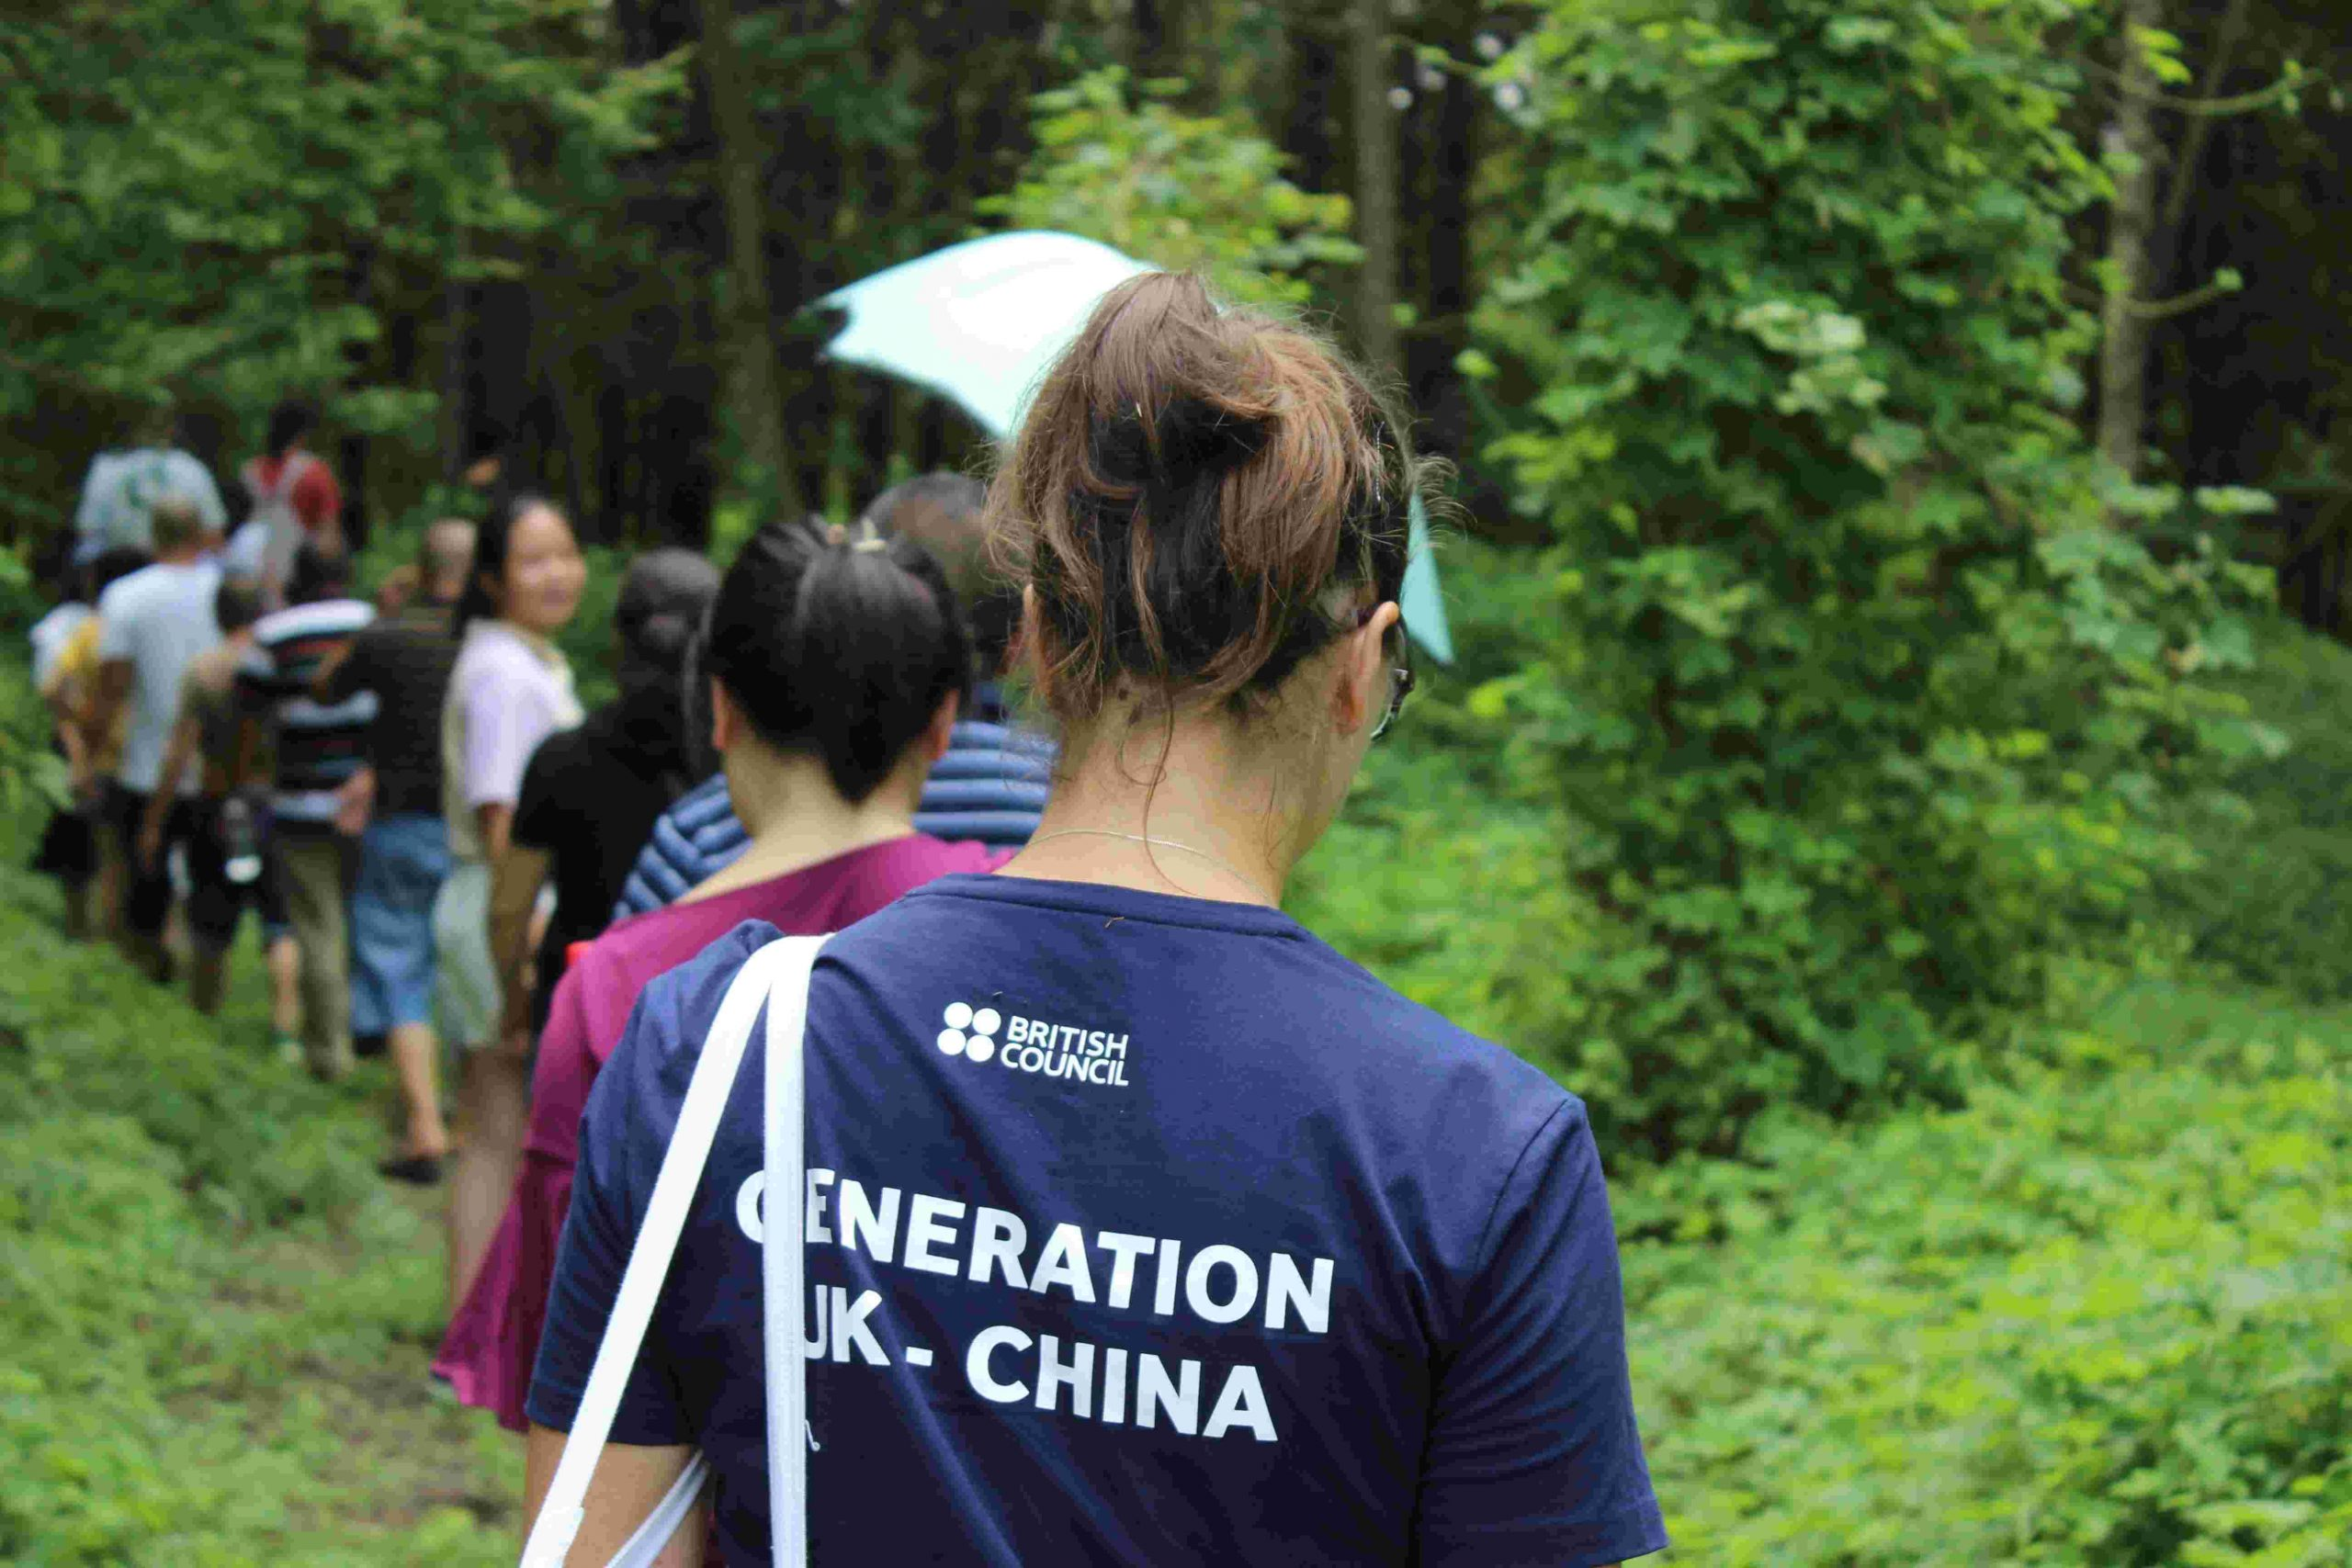 Generation UK - China